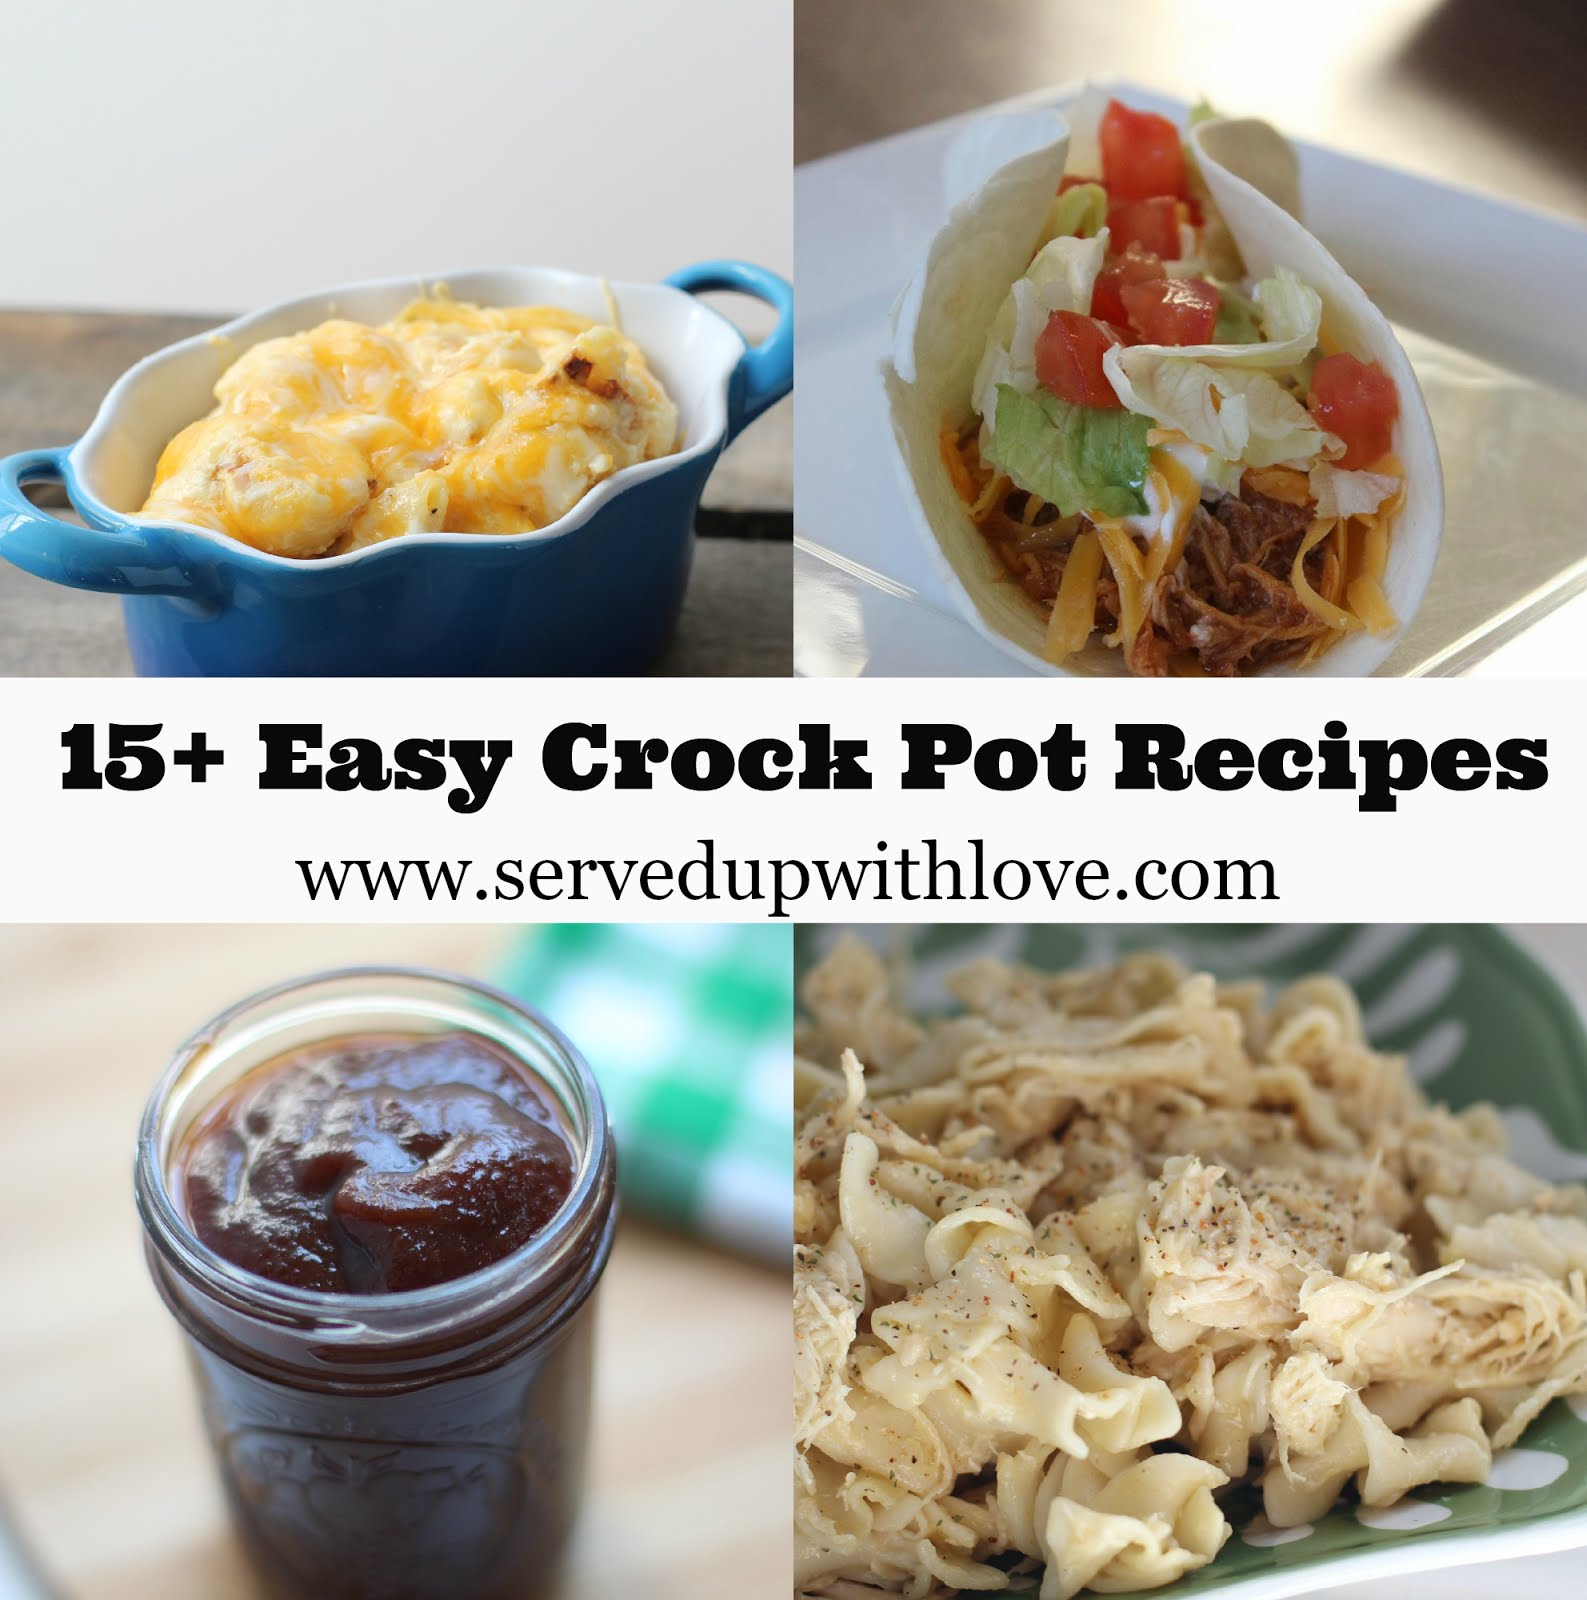 *15+ Easy Crock Pot Recipes*